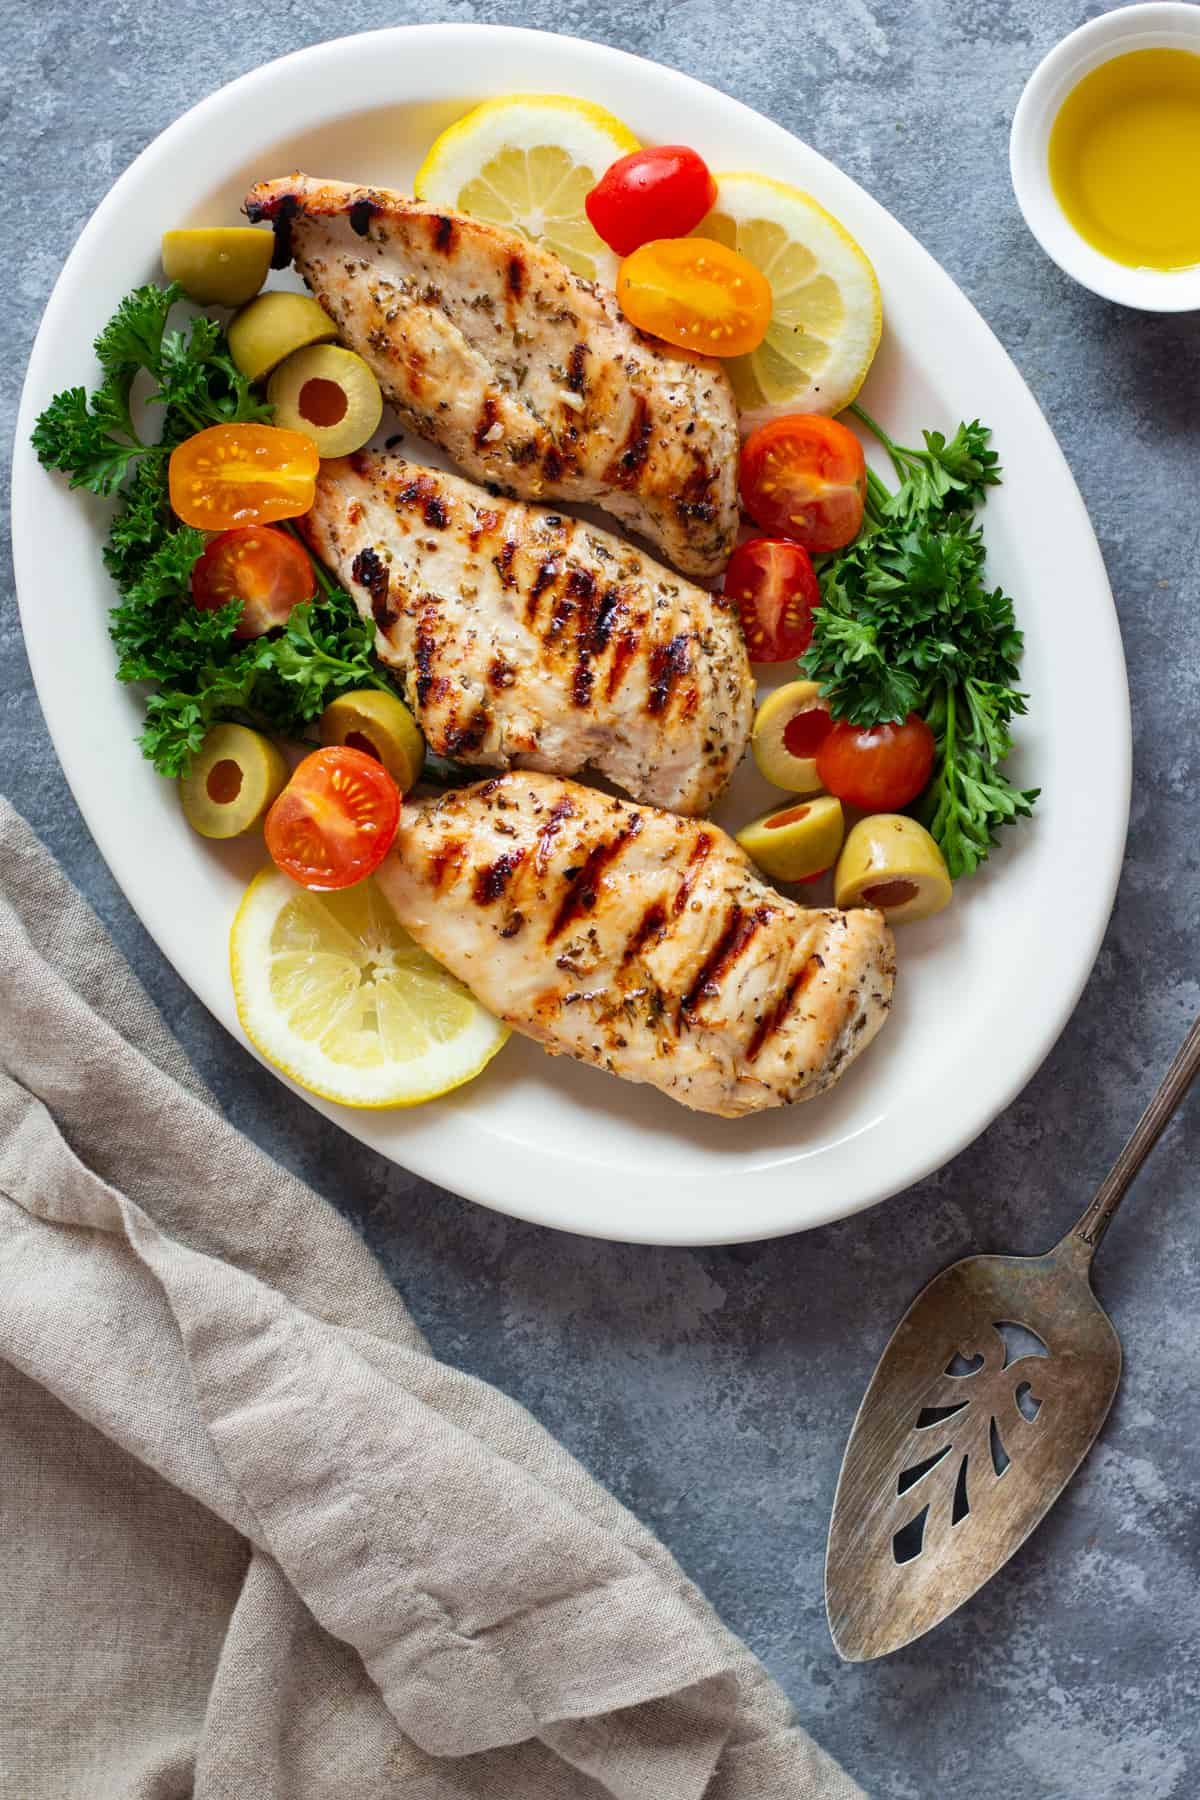 Grill the marinated chicken very well on each side and make sure it's fully cooked before serving.